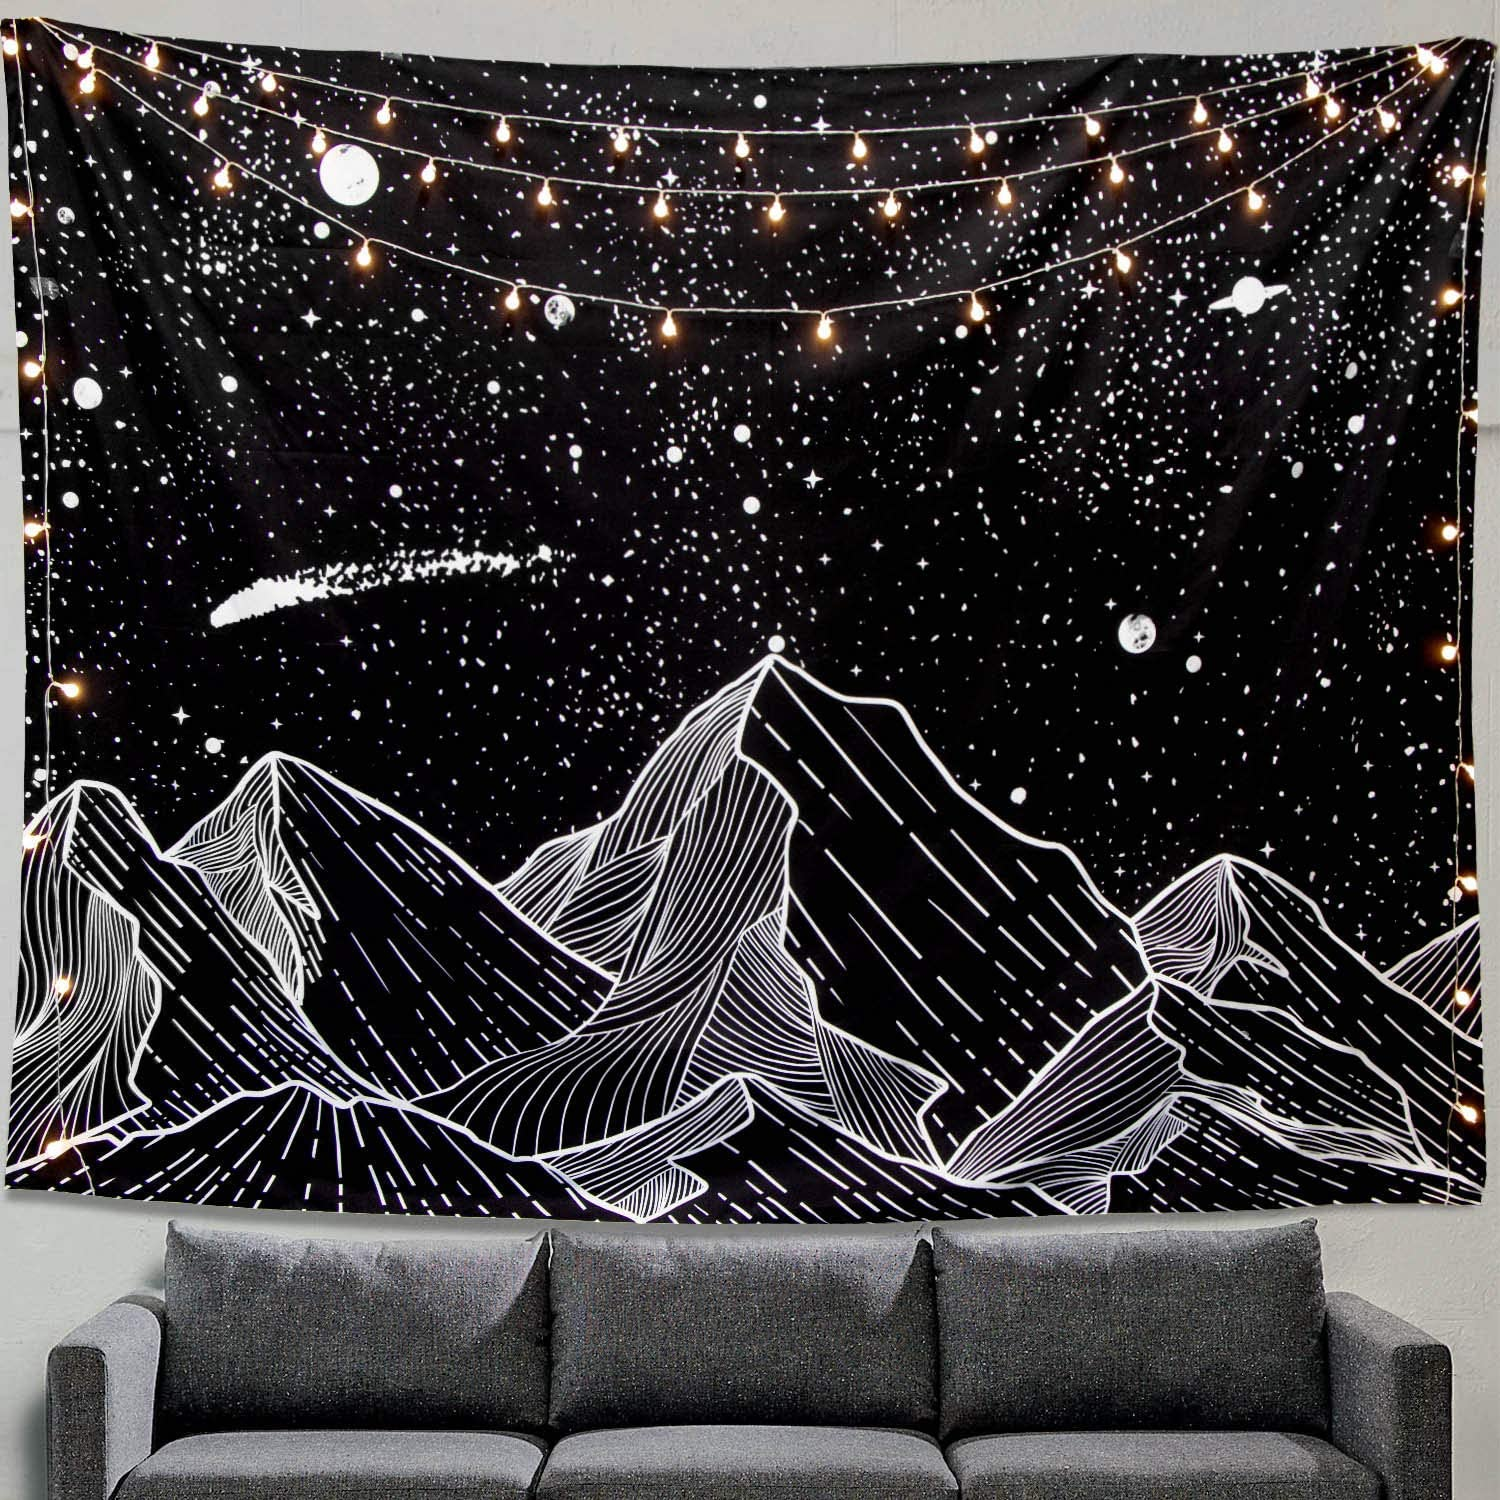 Zussun Mountain Moon Tapestry Wall Hanging Stars Black and White Art Tapestry Home Decor (70